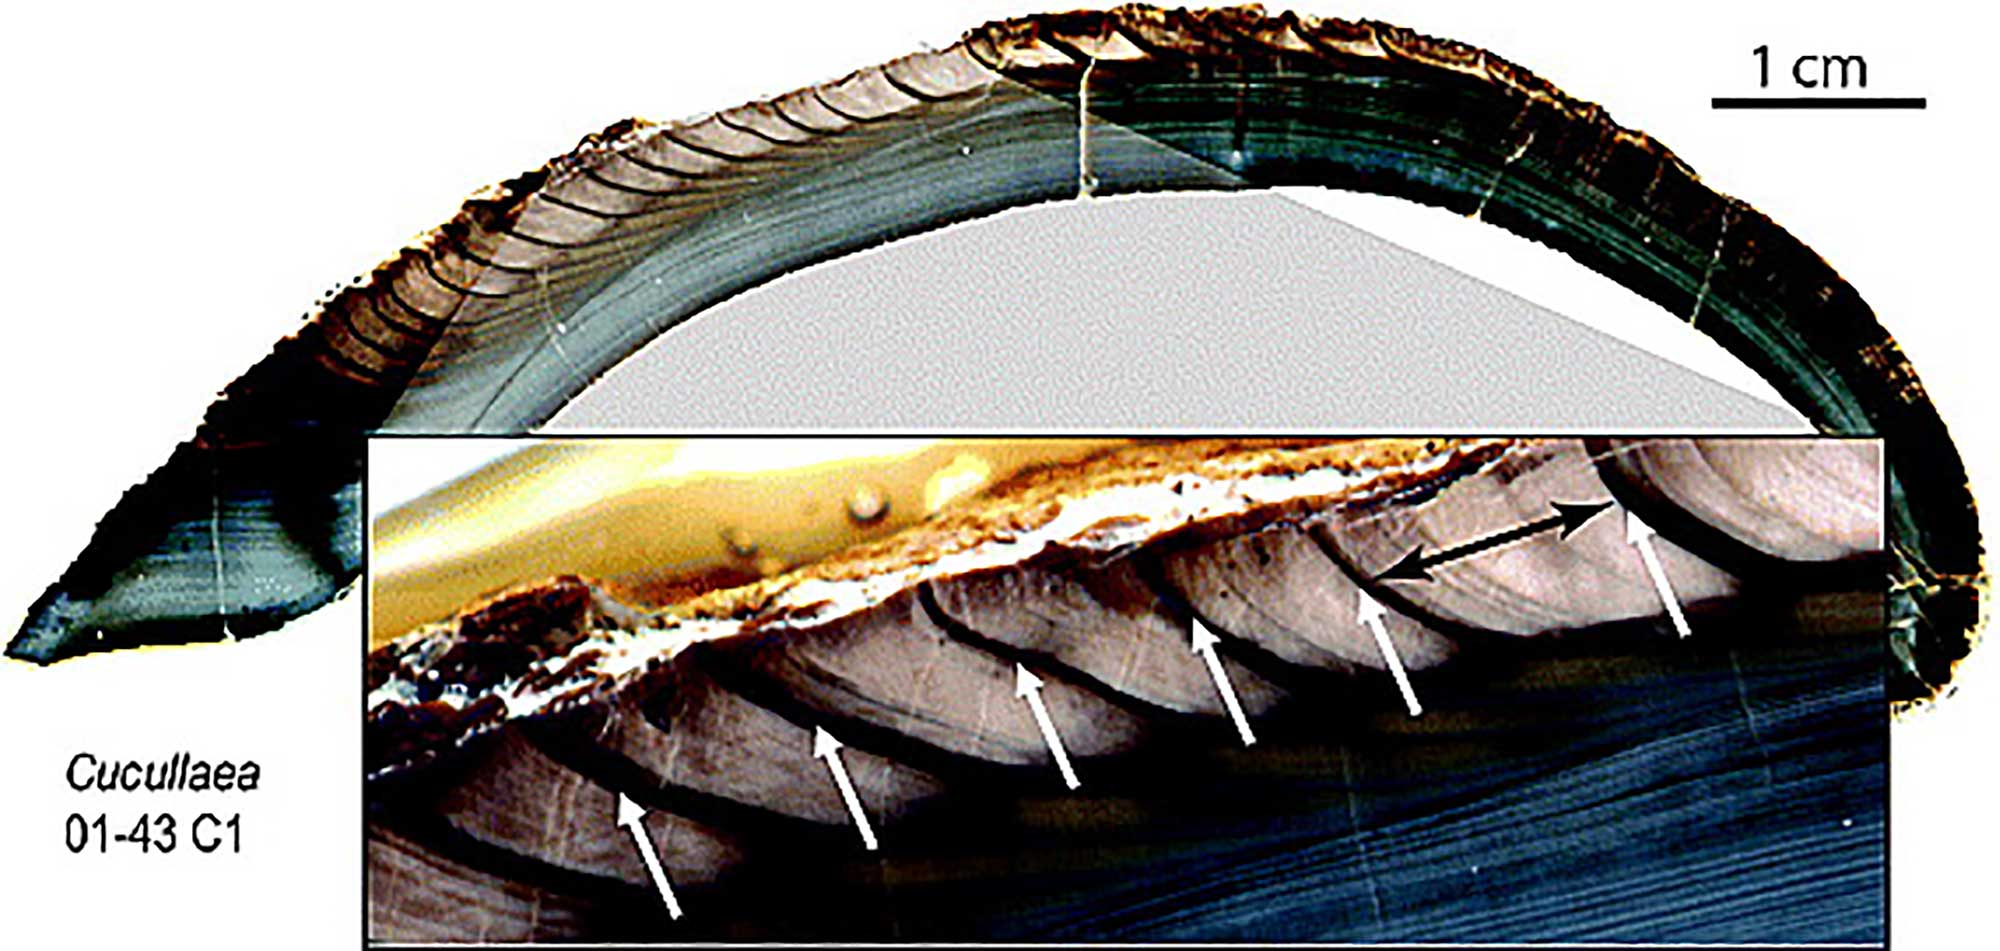 Image showing a cross-section through the shell of a clam, illustrating annual growth bands.